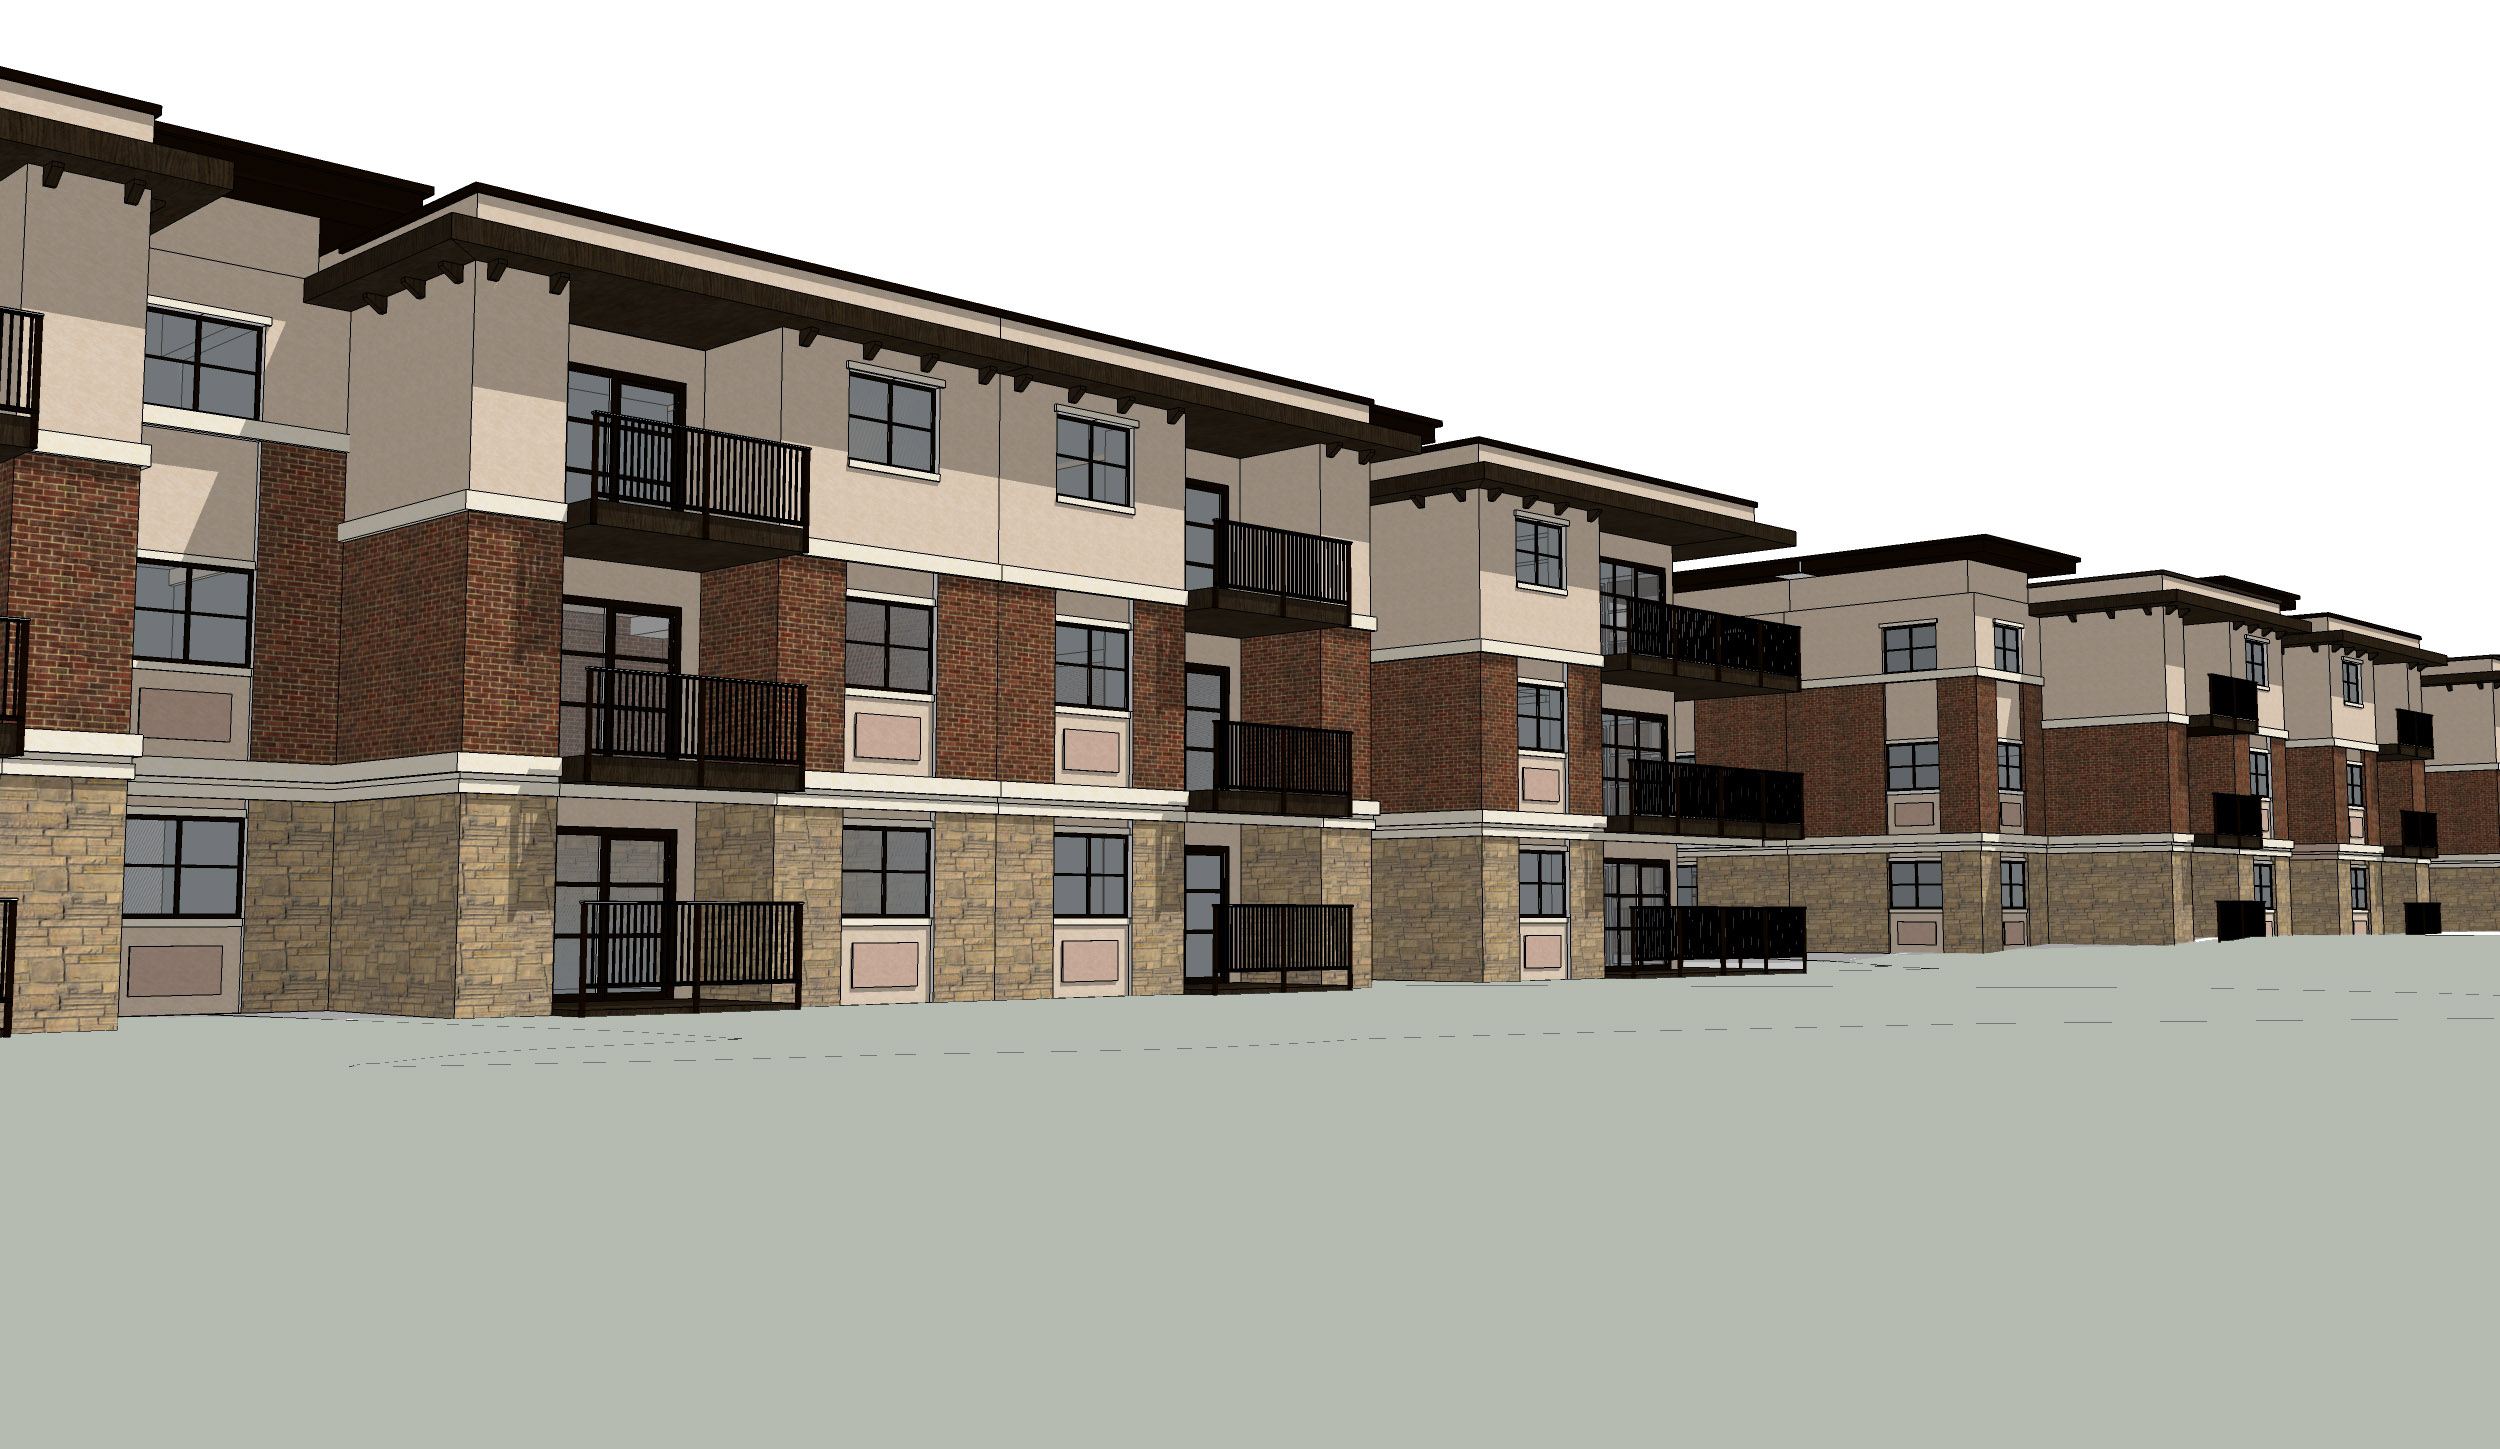 Owner: Corporate Pointe Developers Location: Richland, WA   This housing development located on the Tri-Cities campus of Washington State University, is designed to fill a need for quality housing for both WSU students as well as the surrounding community. The project will be constructed in 5 phases, and when complete will offer a recreational clubhouse, outdoor green space, and direct access to the river.